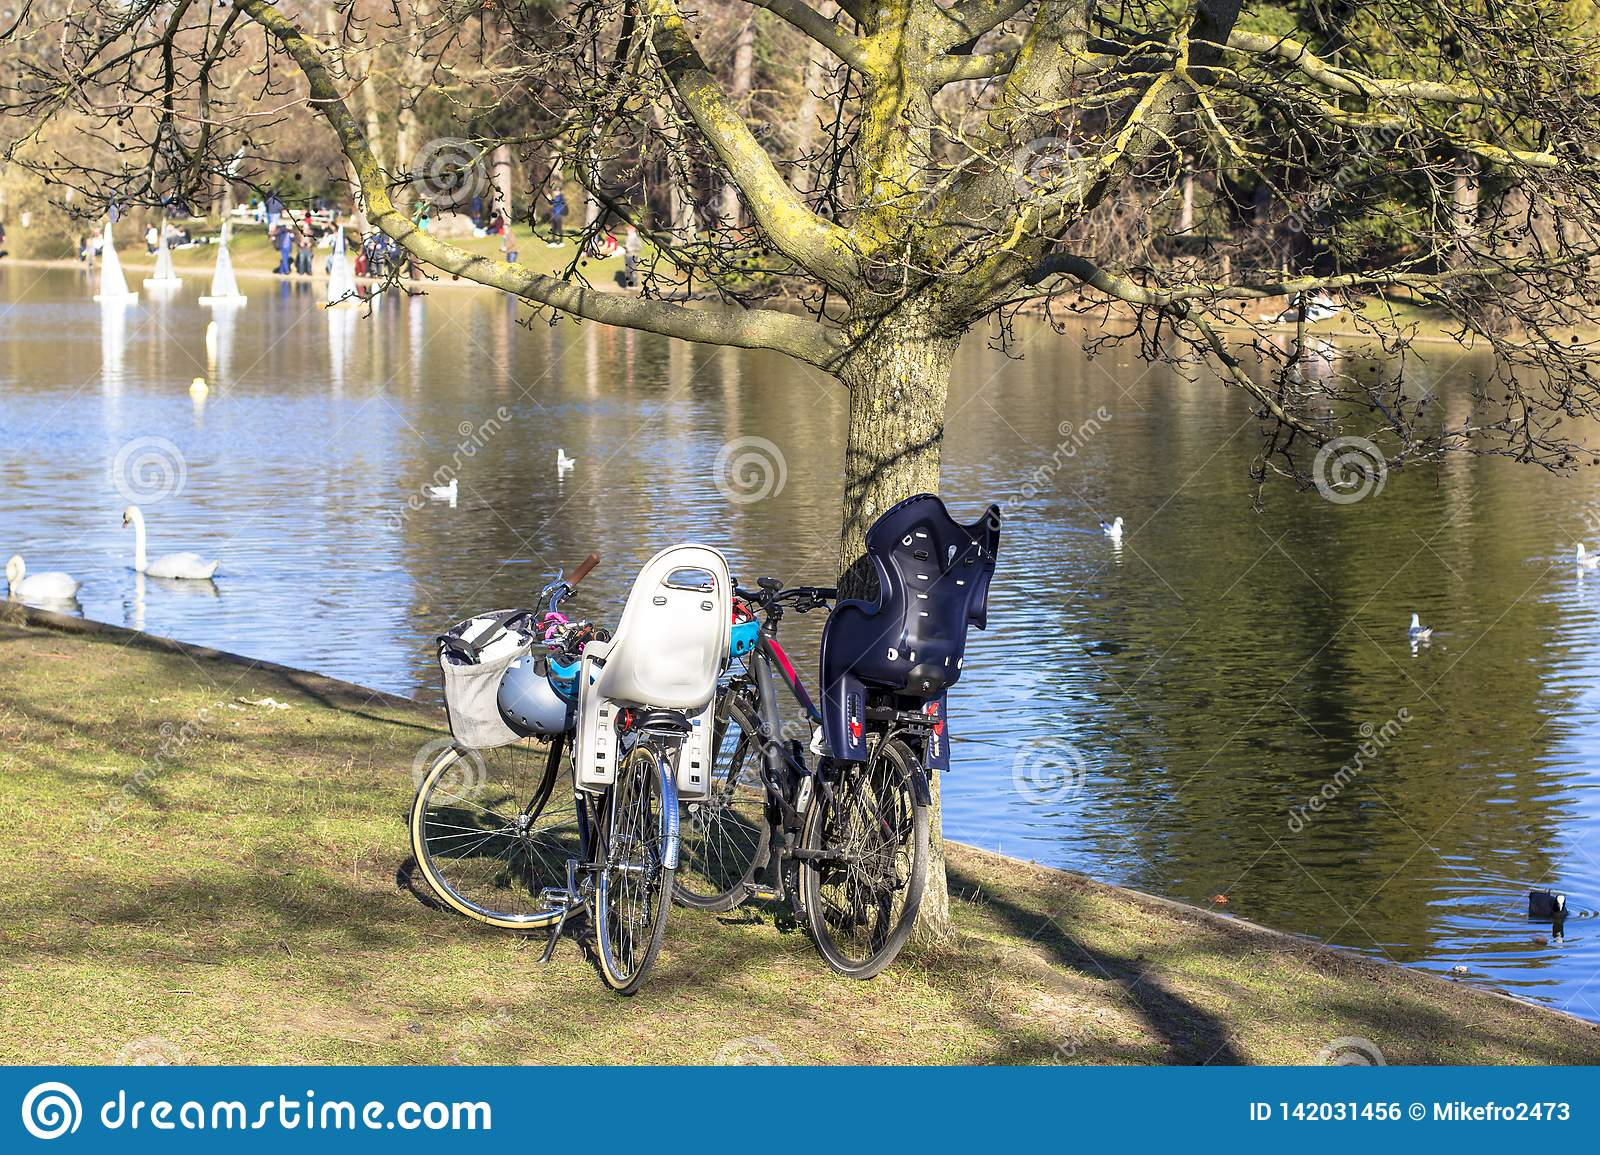 Bicycles in the park by the pond in which birds float. People on the other side launch model sailboats